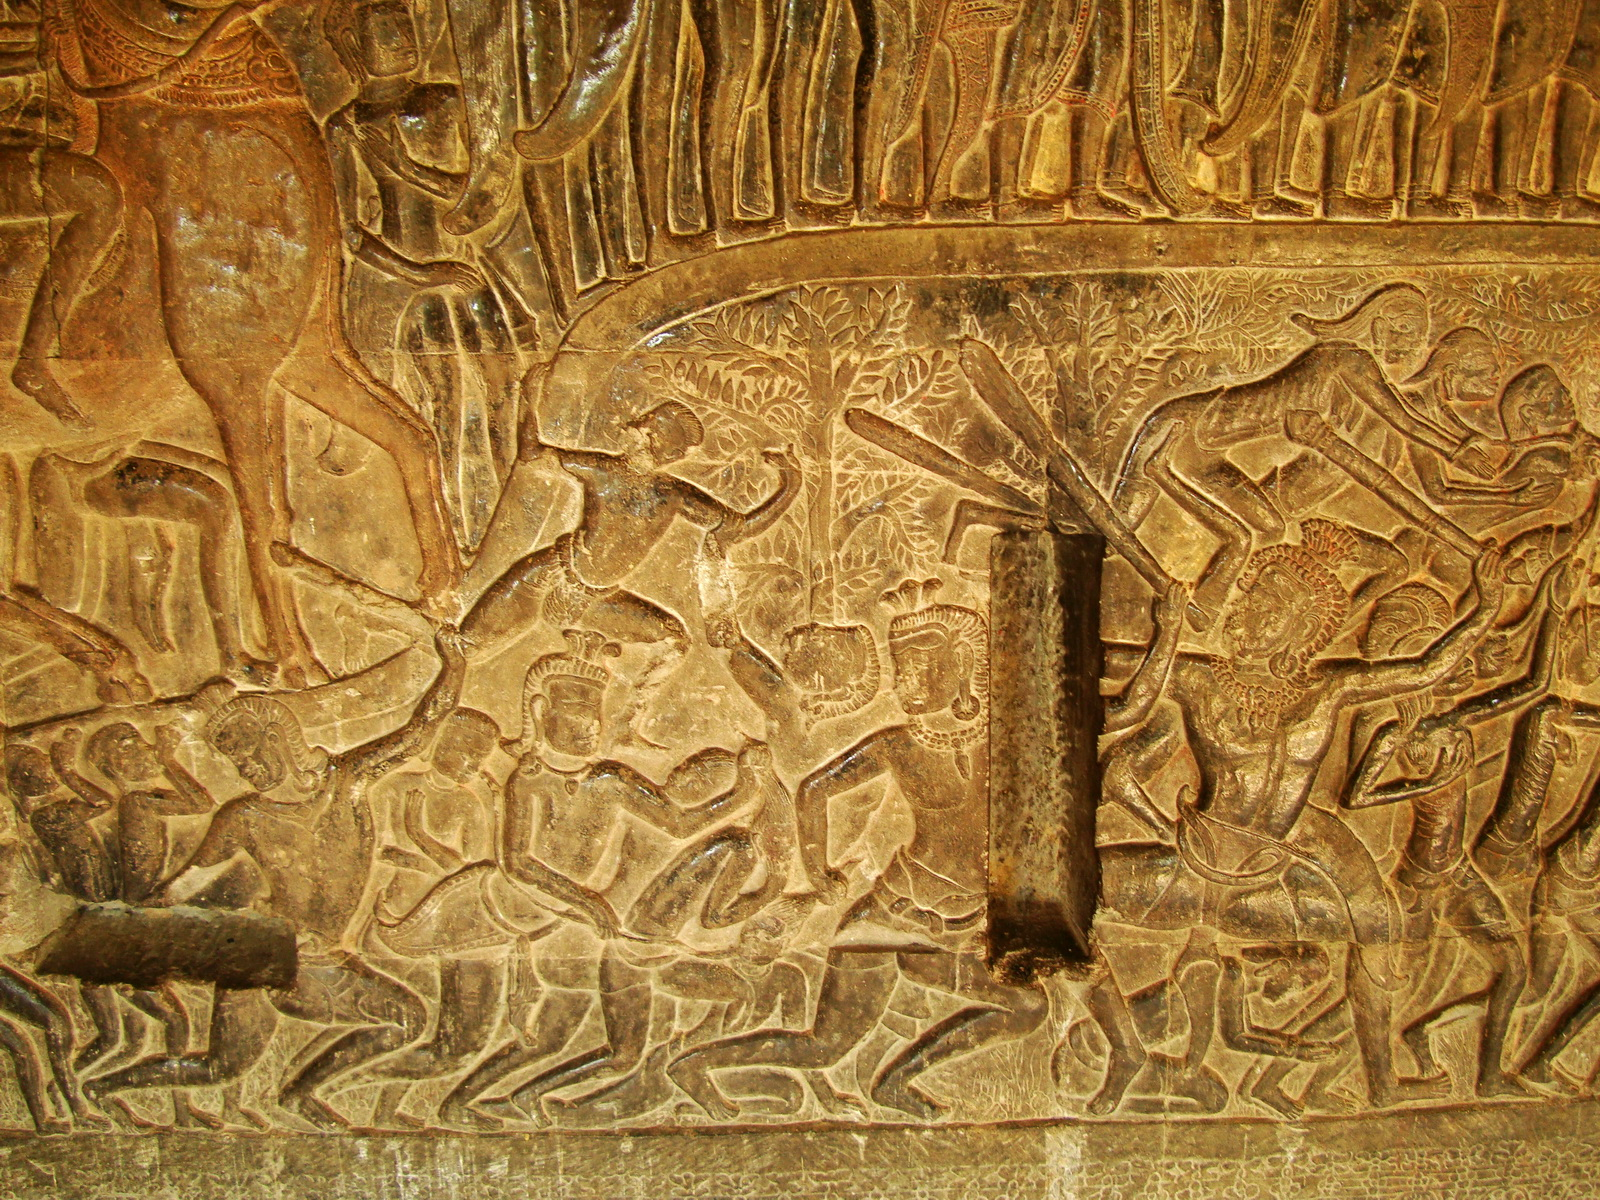 Angkor Wat Bas relief S Gallery E Wing Heavens and Hells 06